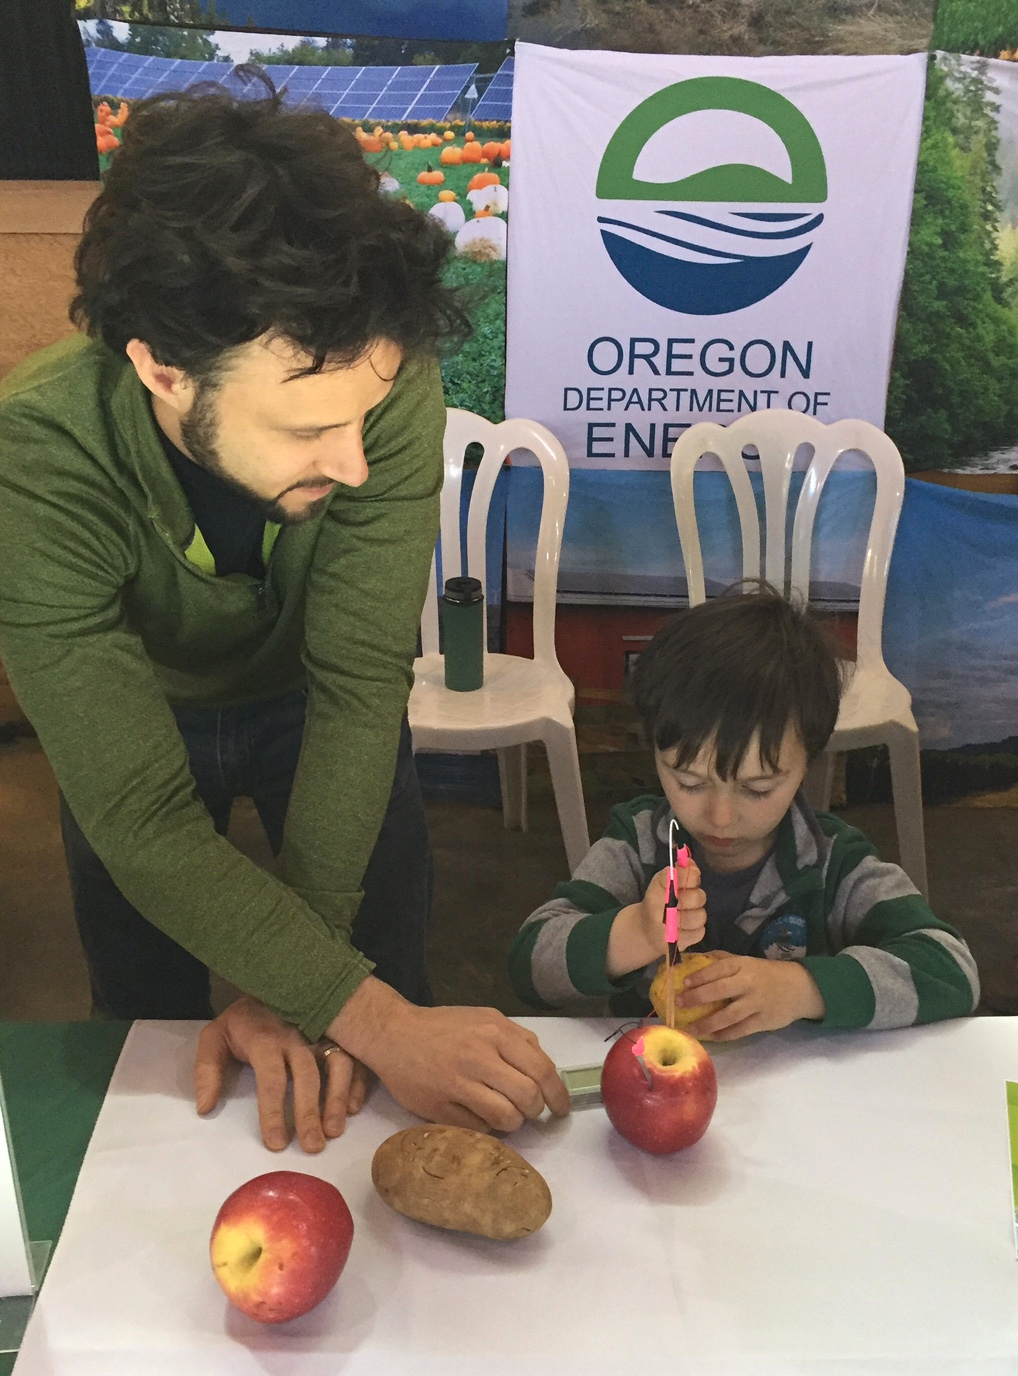 During an Earth Day event at the Oregon Garden in  Silverton , ODOE Engineer Blake Shelide showed a young boy how to create an electric current using fruits and vegetables.